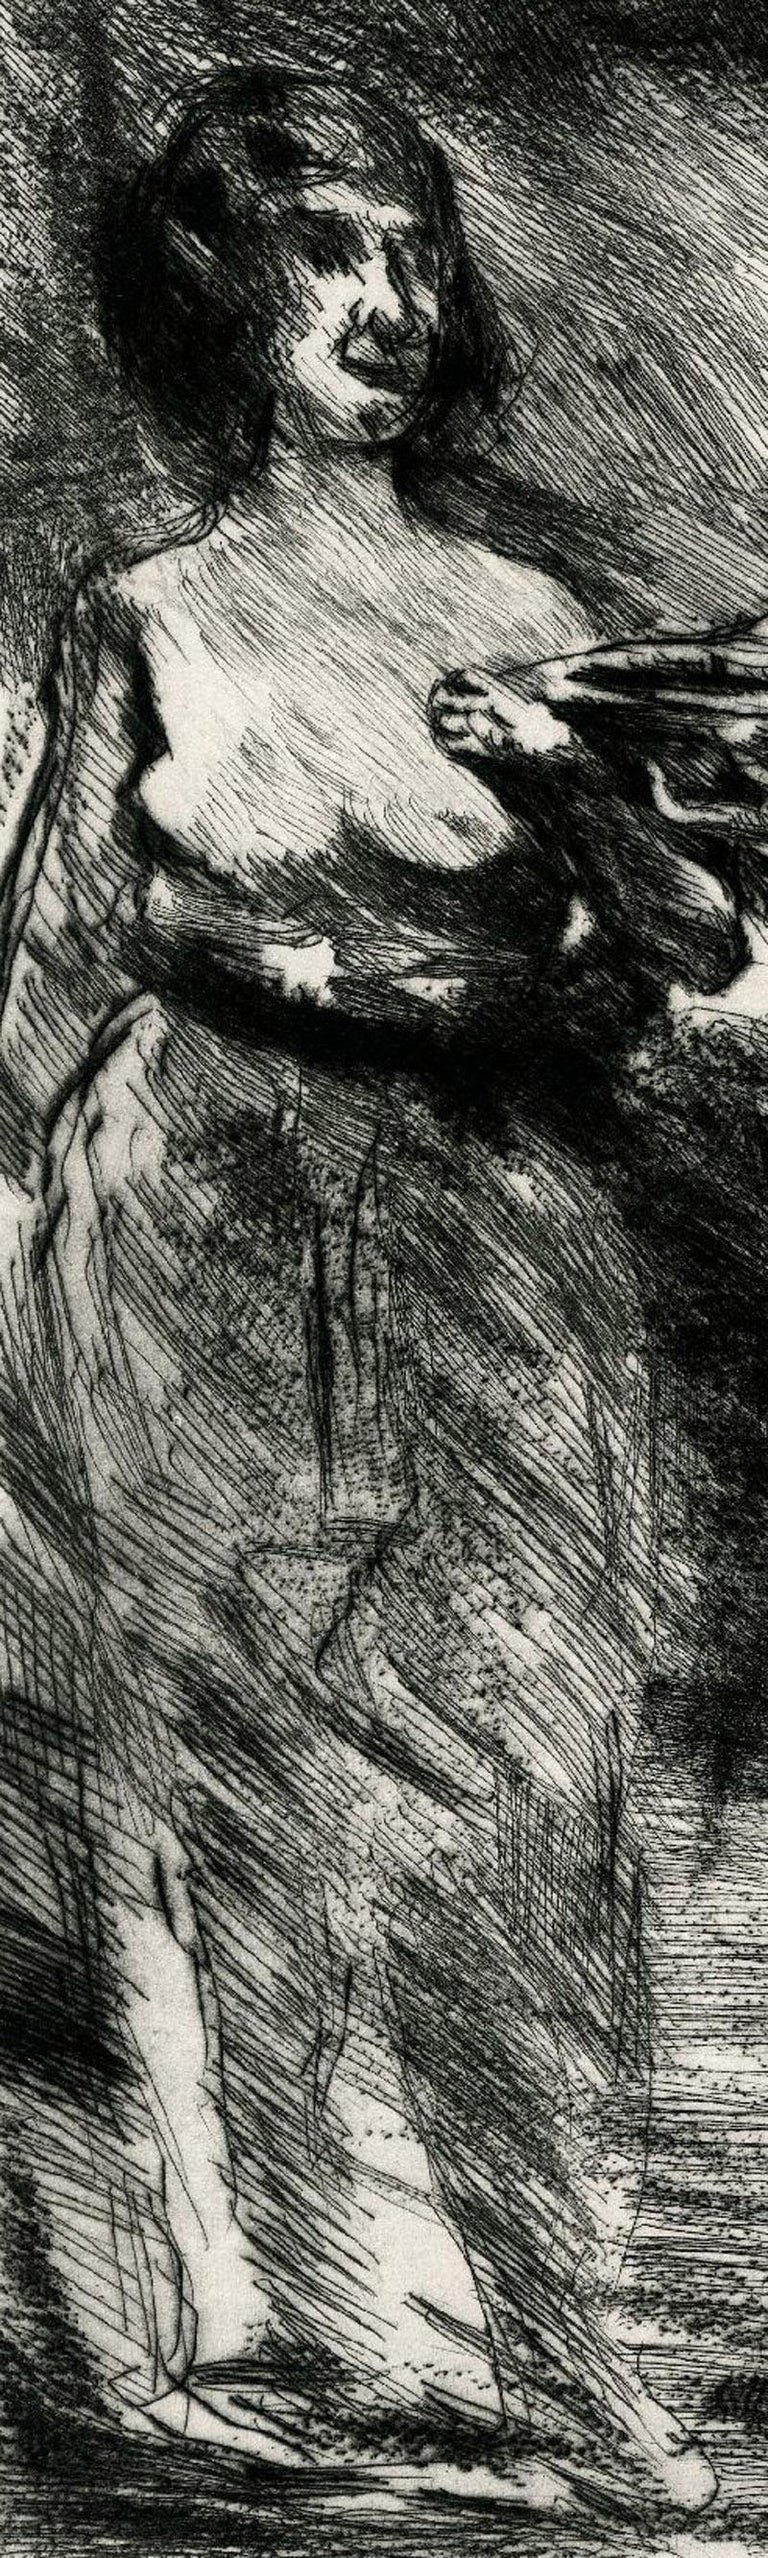 Drei Grazien (Three Graces) Etching and drypoint, 1920 Signed and titled in pencil (see photo) Total Edition 100: 30 on Japan and 70 on Butten paper as here Published by von Wohlgemuth & Liffner, Berlin The Three Graces were mythological goddesses –